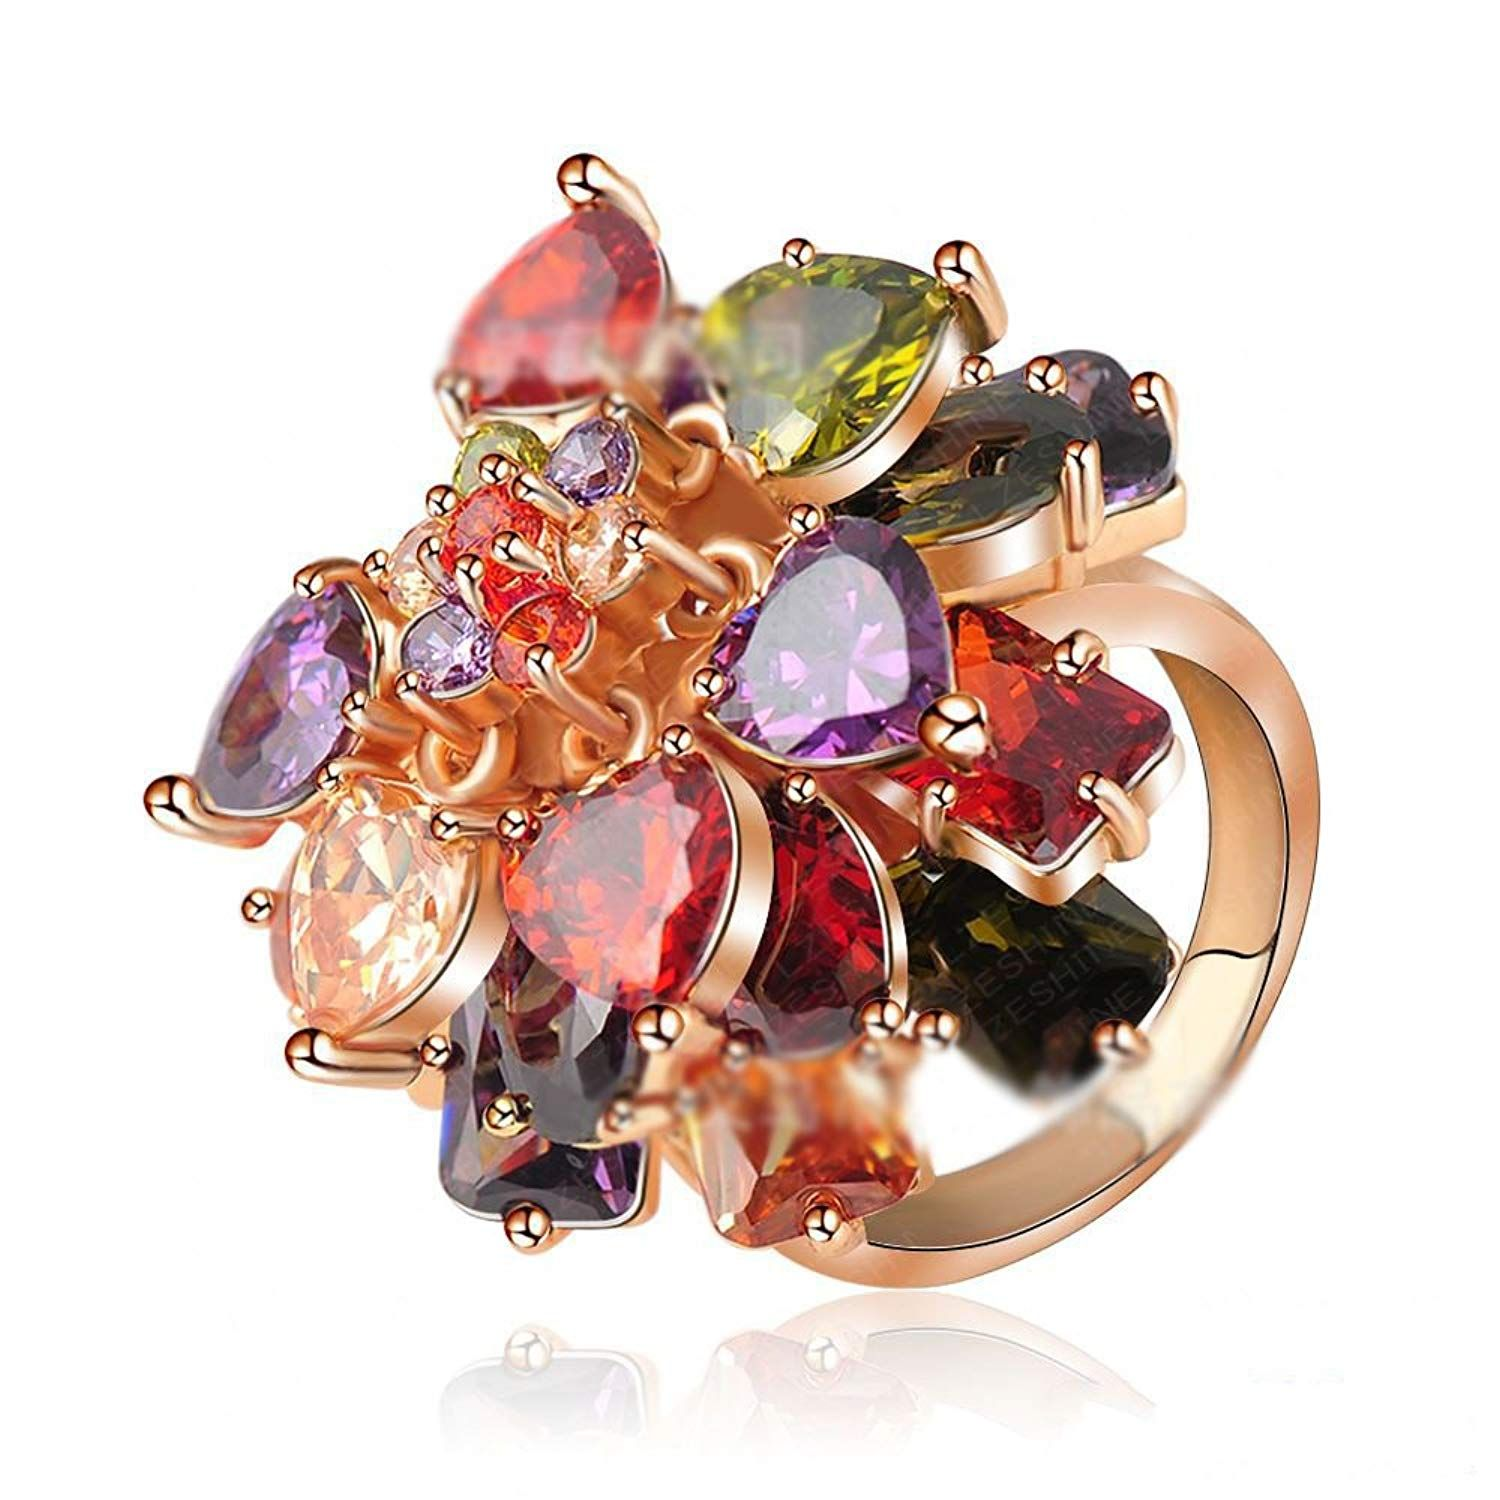 4c234657c LuckyWeng New Exquisite Fashion Jewelry Rose Gold Flower Austrian Crystal  Multicolour Diamond Ring *** We appreciate you for seeing our photo.